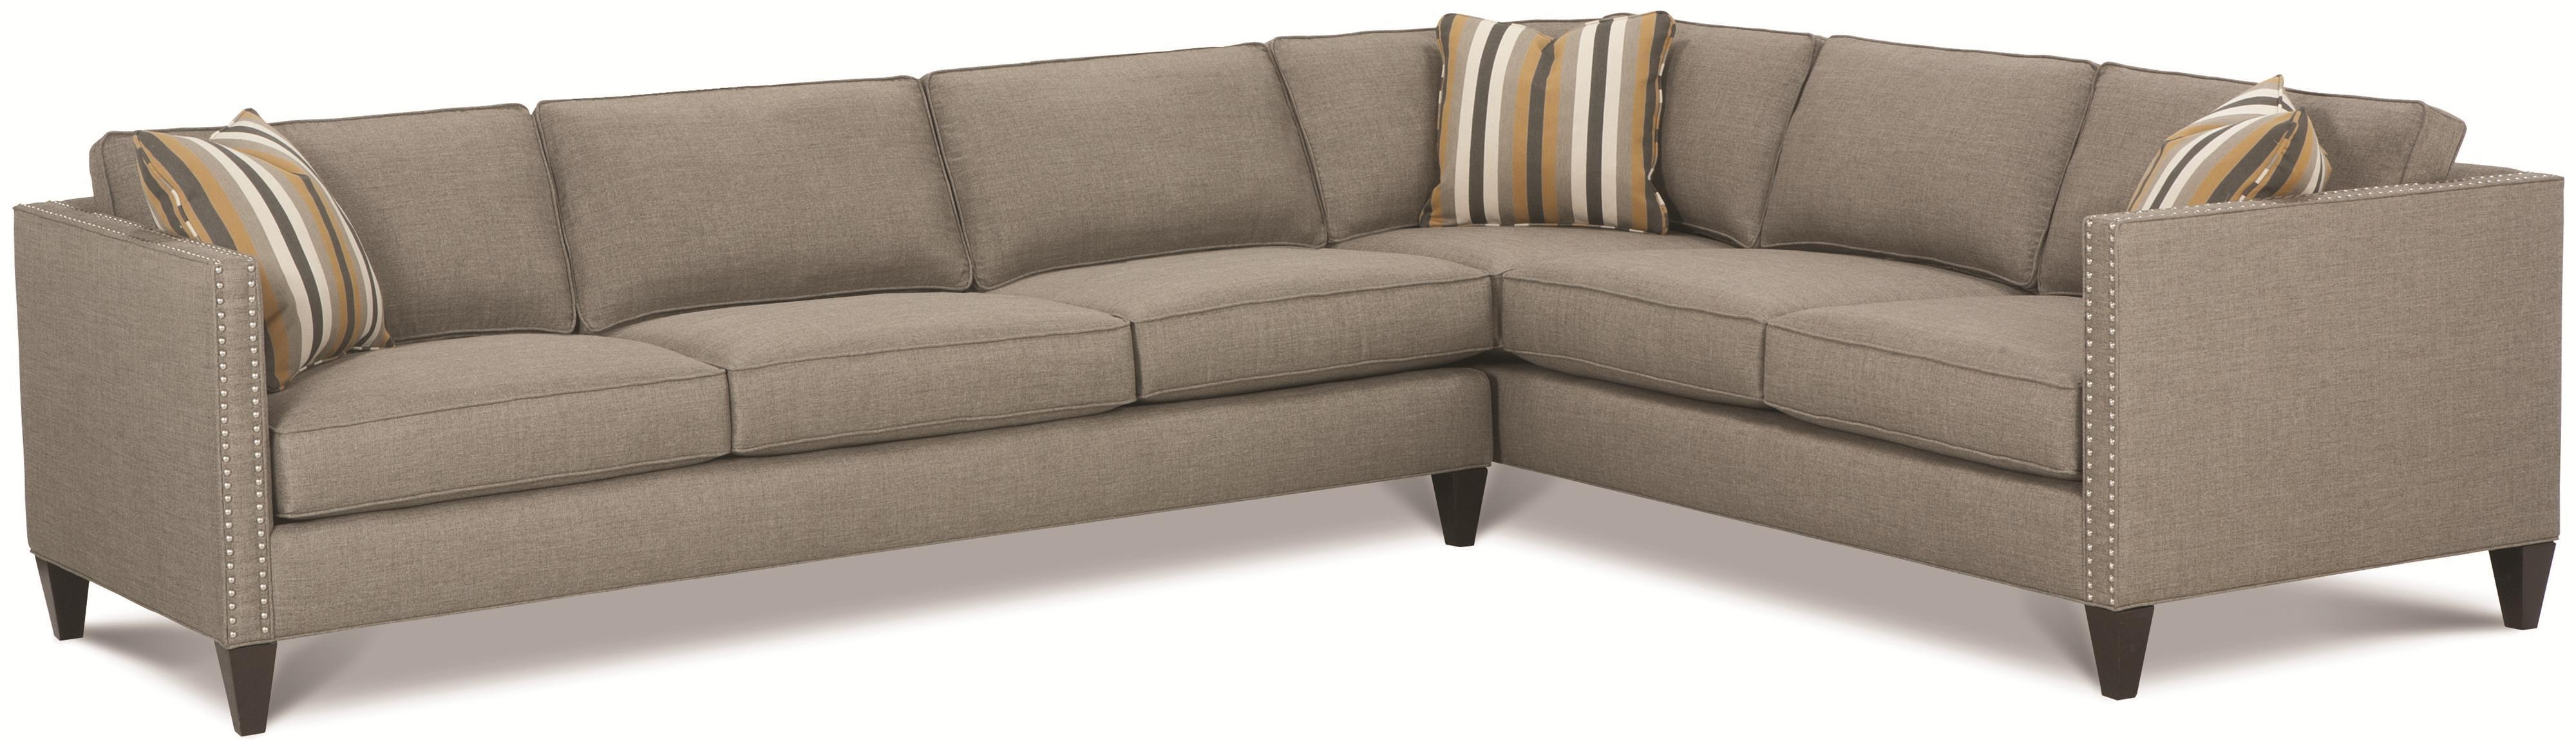 Rowe Mitchell – Rxo <B>Customizable</b> Contemporary Sectional Within Rowe Sectional Sofas (View 4 of 20)